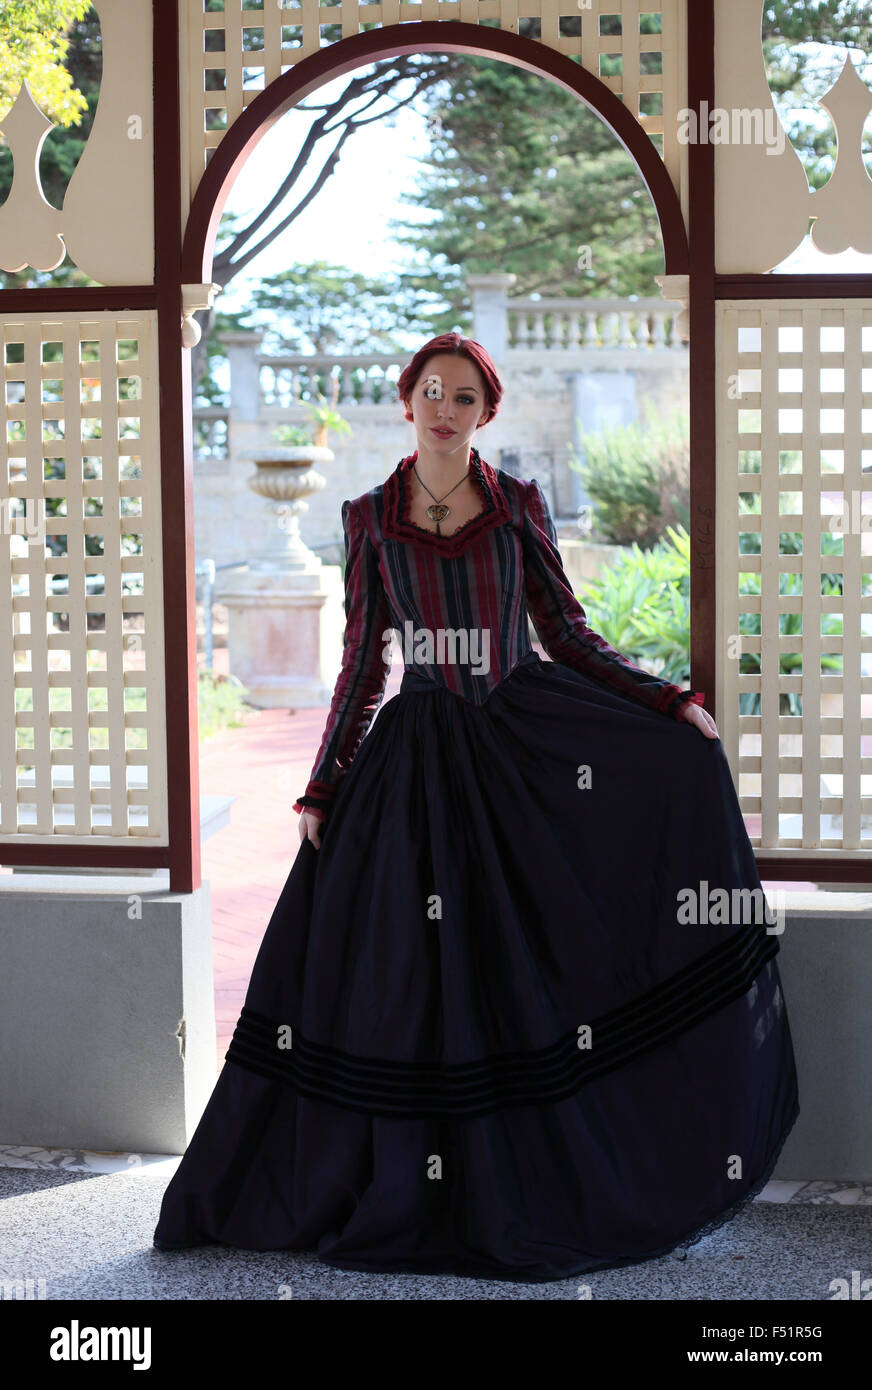 Portrait Of A Beautiful Red Haired Girl Wearing Gothic Inspired Victorian Era Clothes Vampire Or